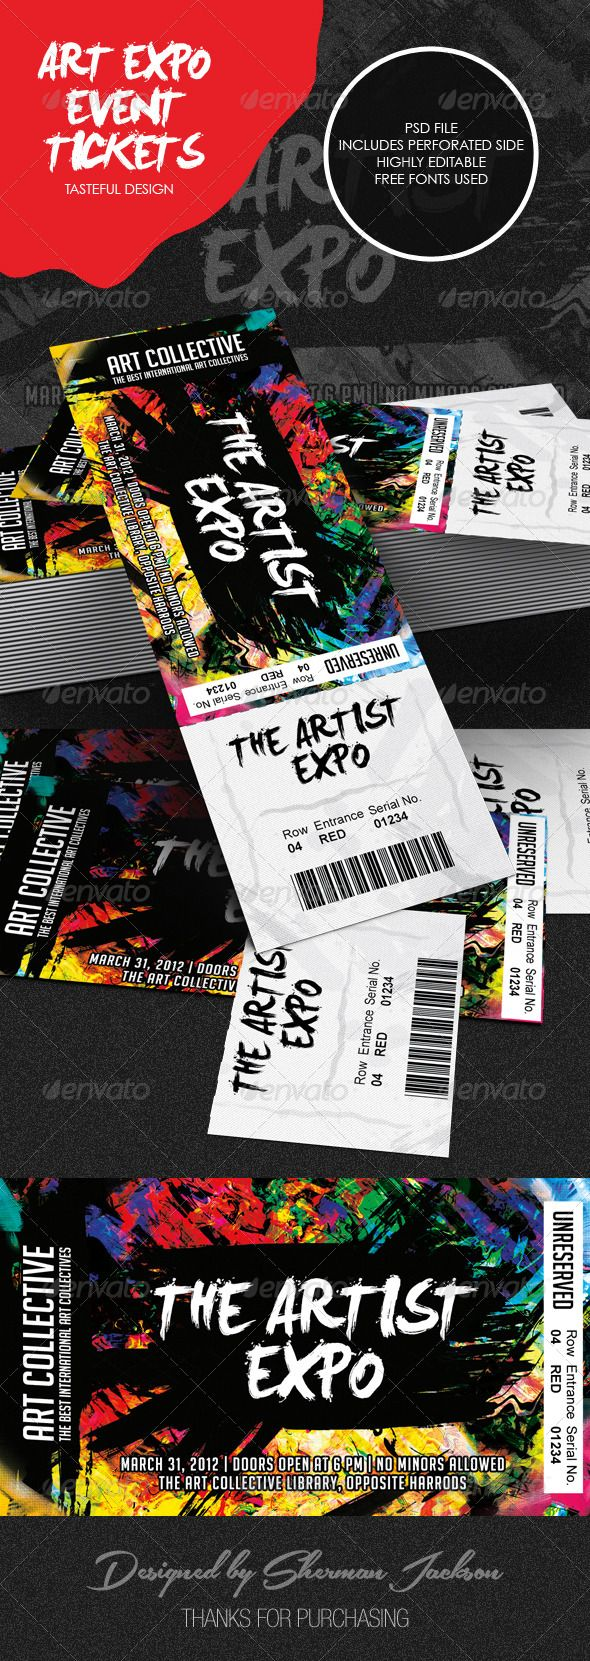 Art Event Ticket Template Ticket Template Event Ticket And Template - Event ticket template photoshop